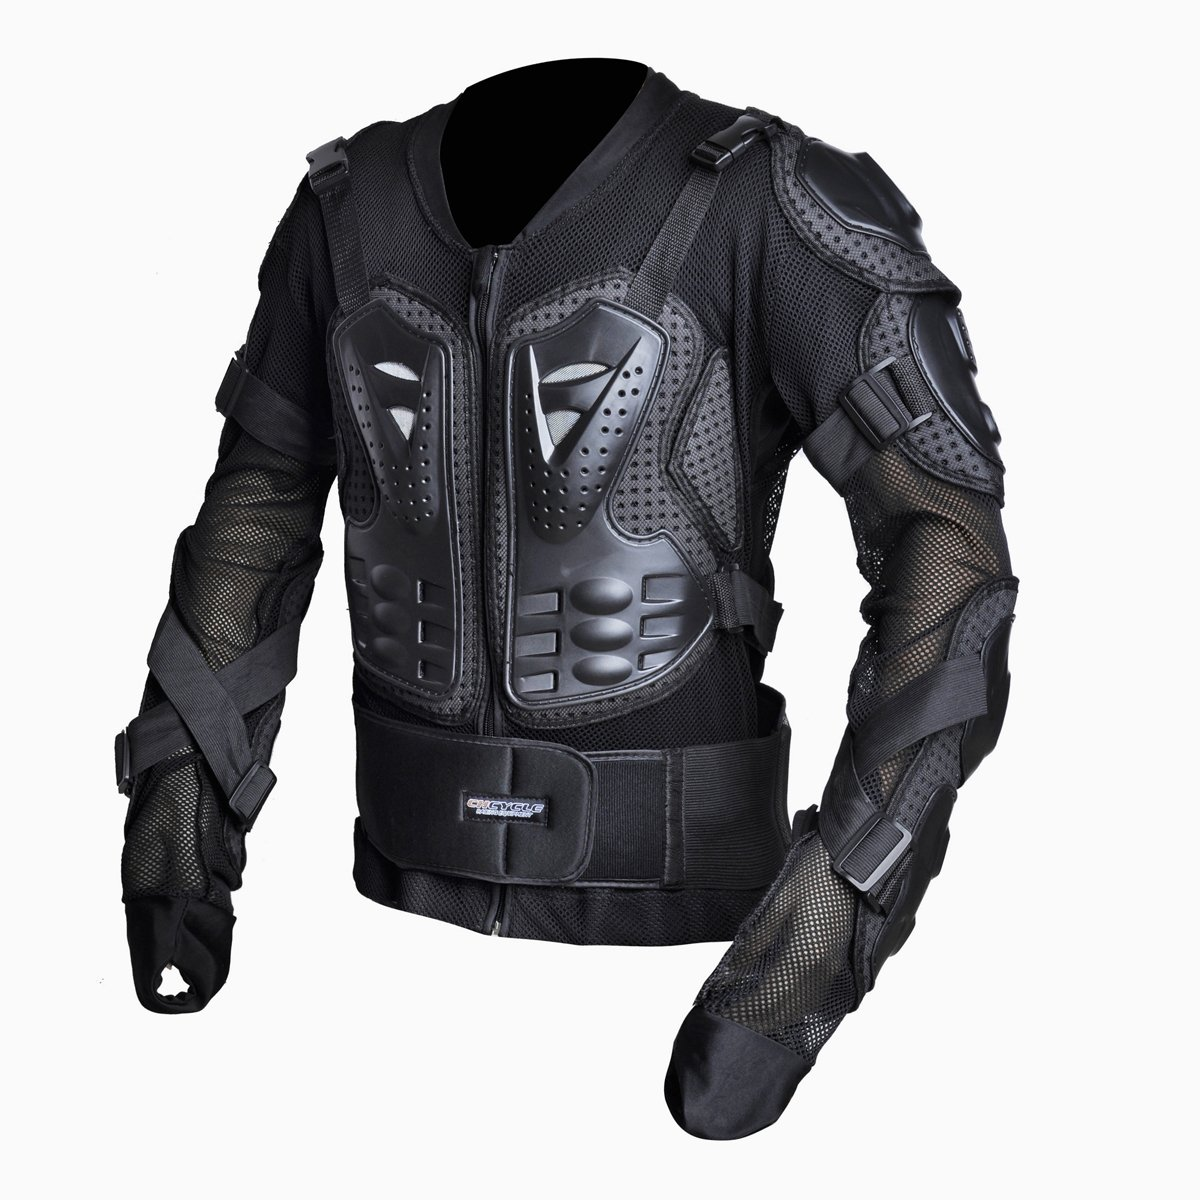 CHCYCLE Motorcycle Full Body Armor Motocross ATV Motorbike Jacket Protector (Large, Black)